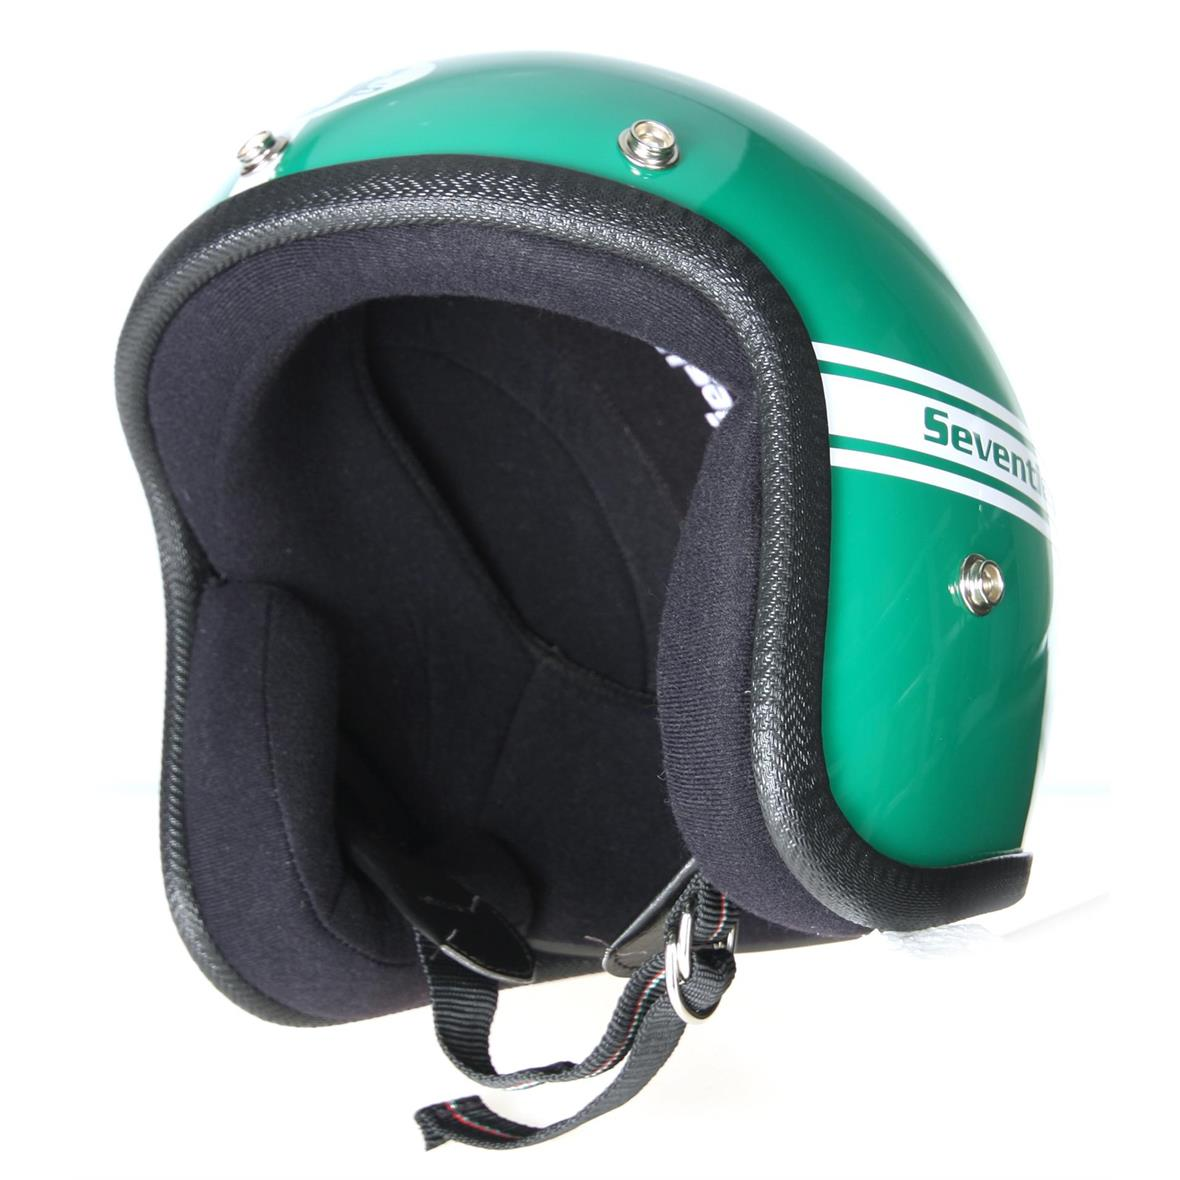 Product Image for 'Helmet 70'STitle'